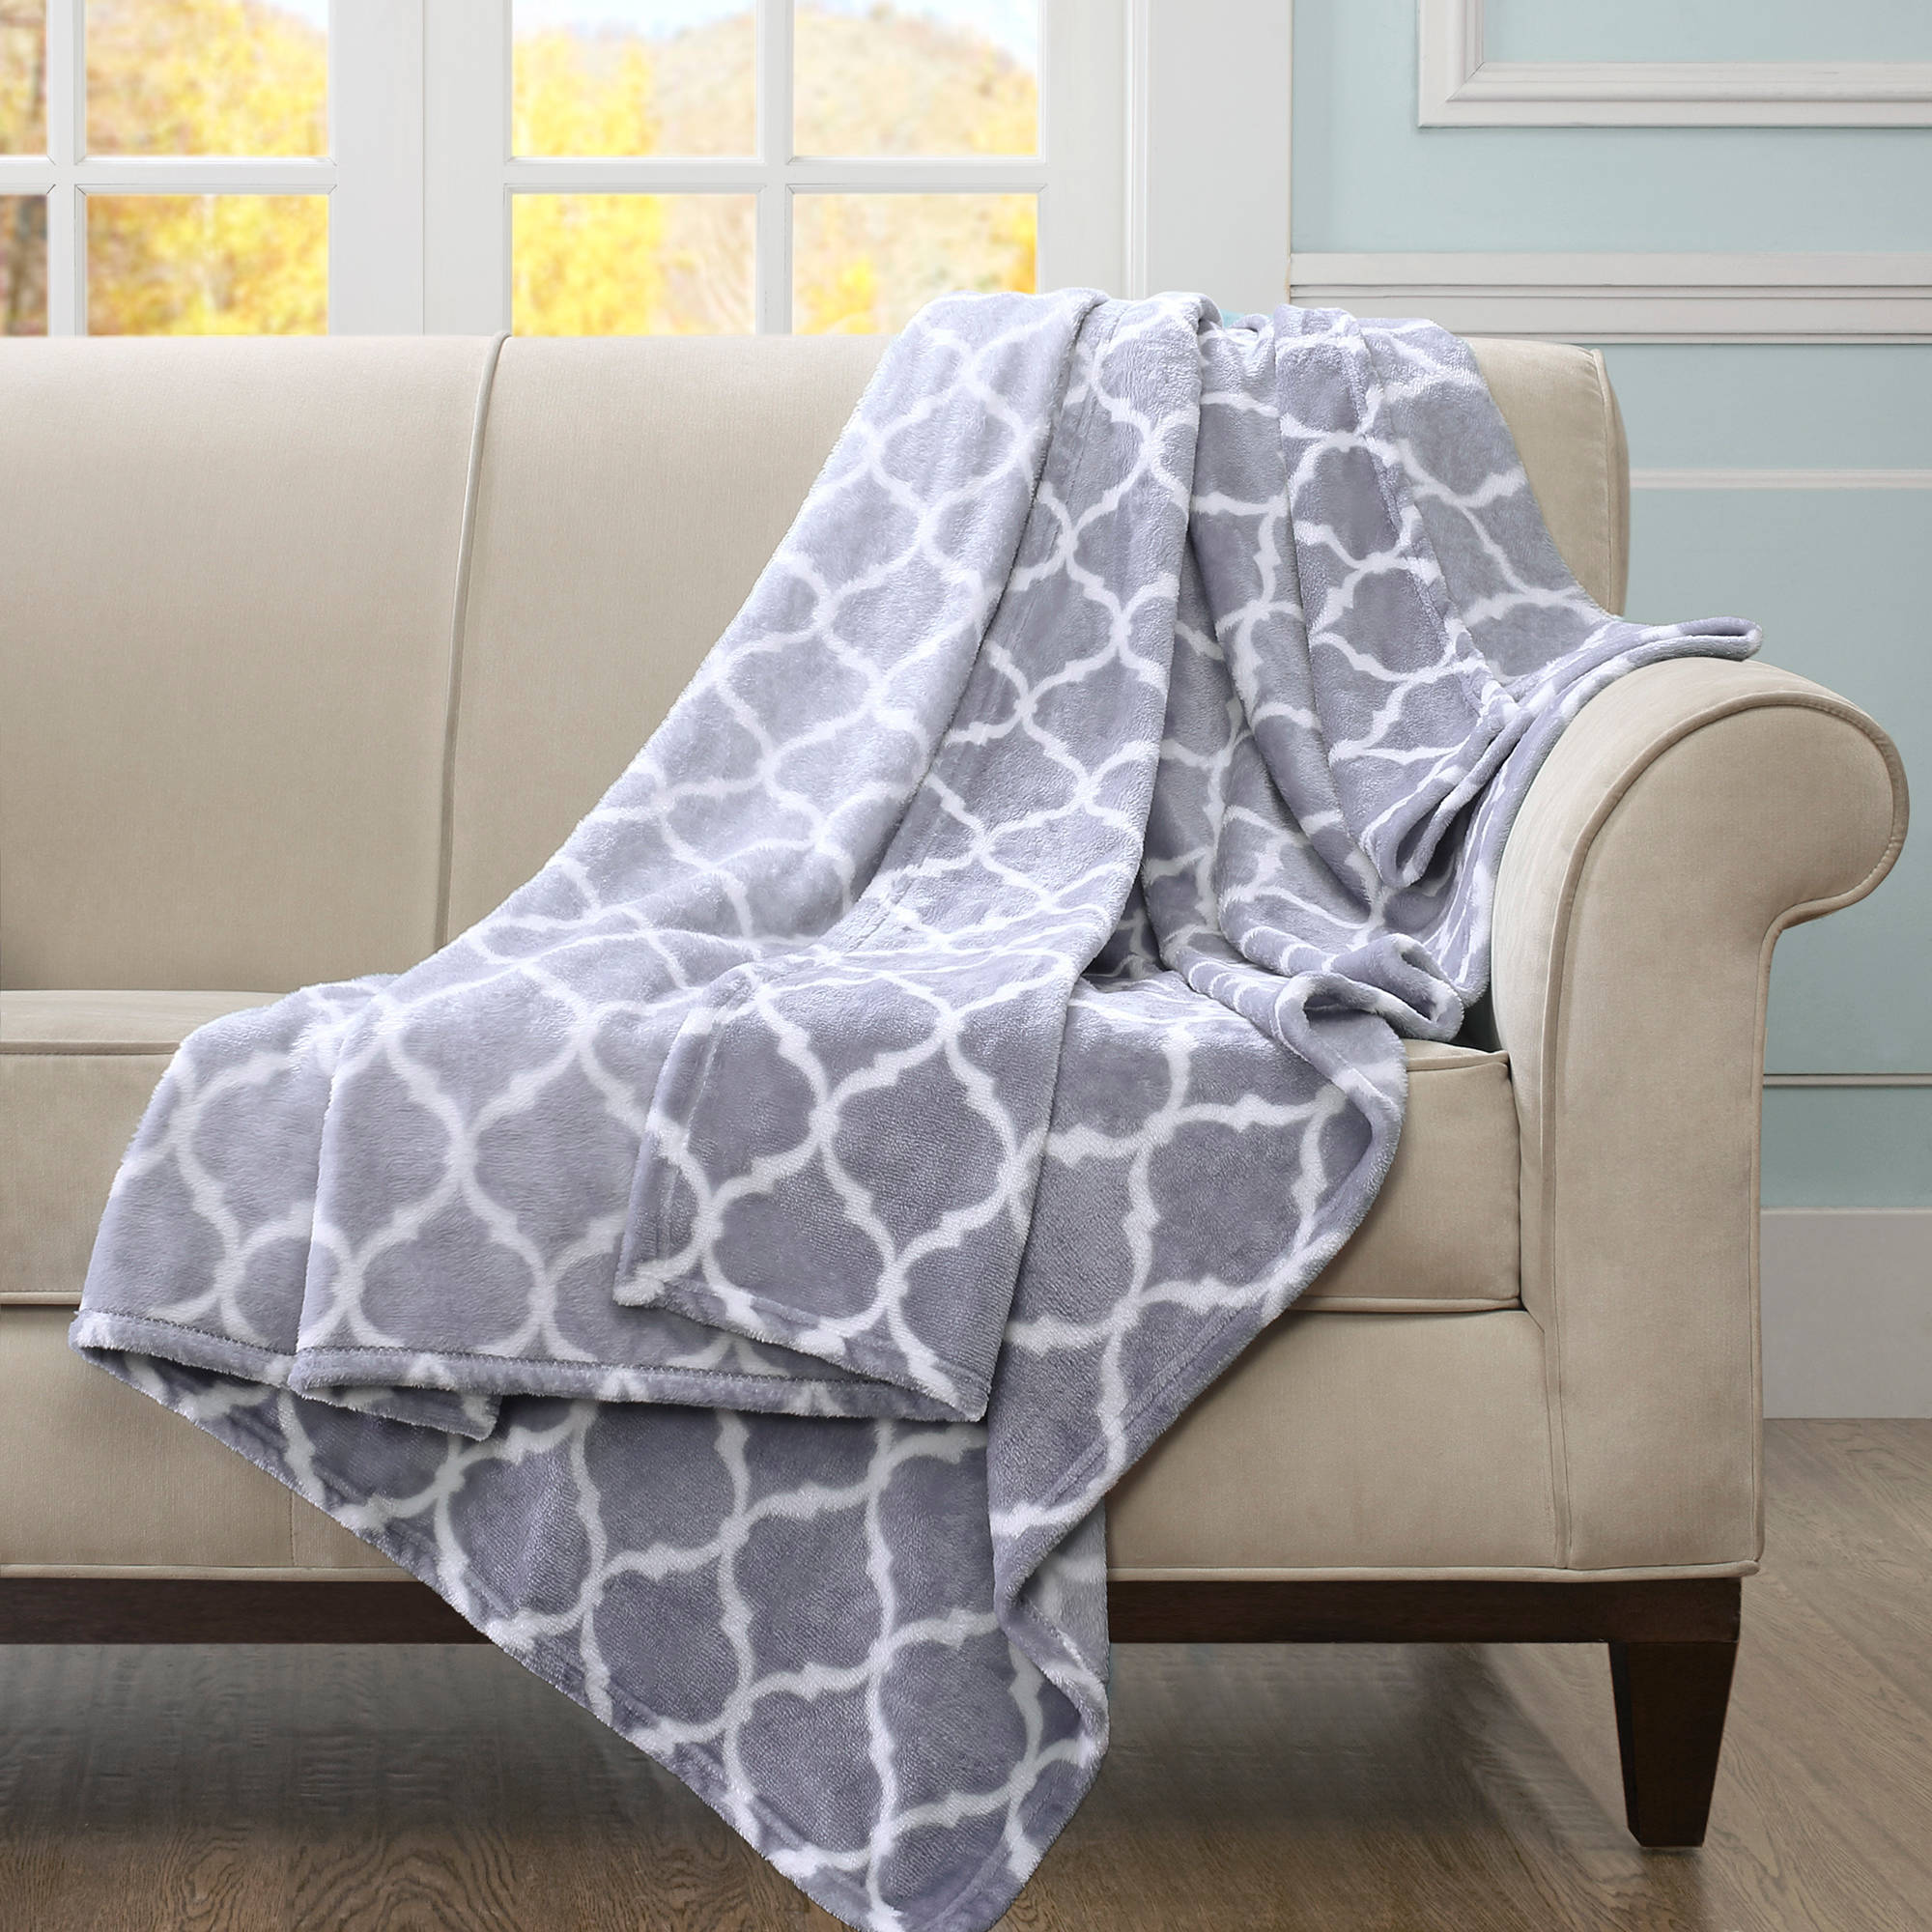 Home Essence Ogee Oversized Throw